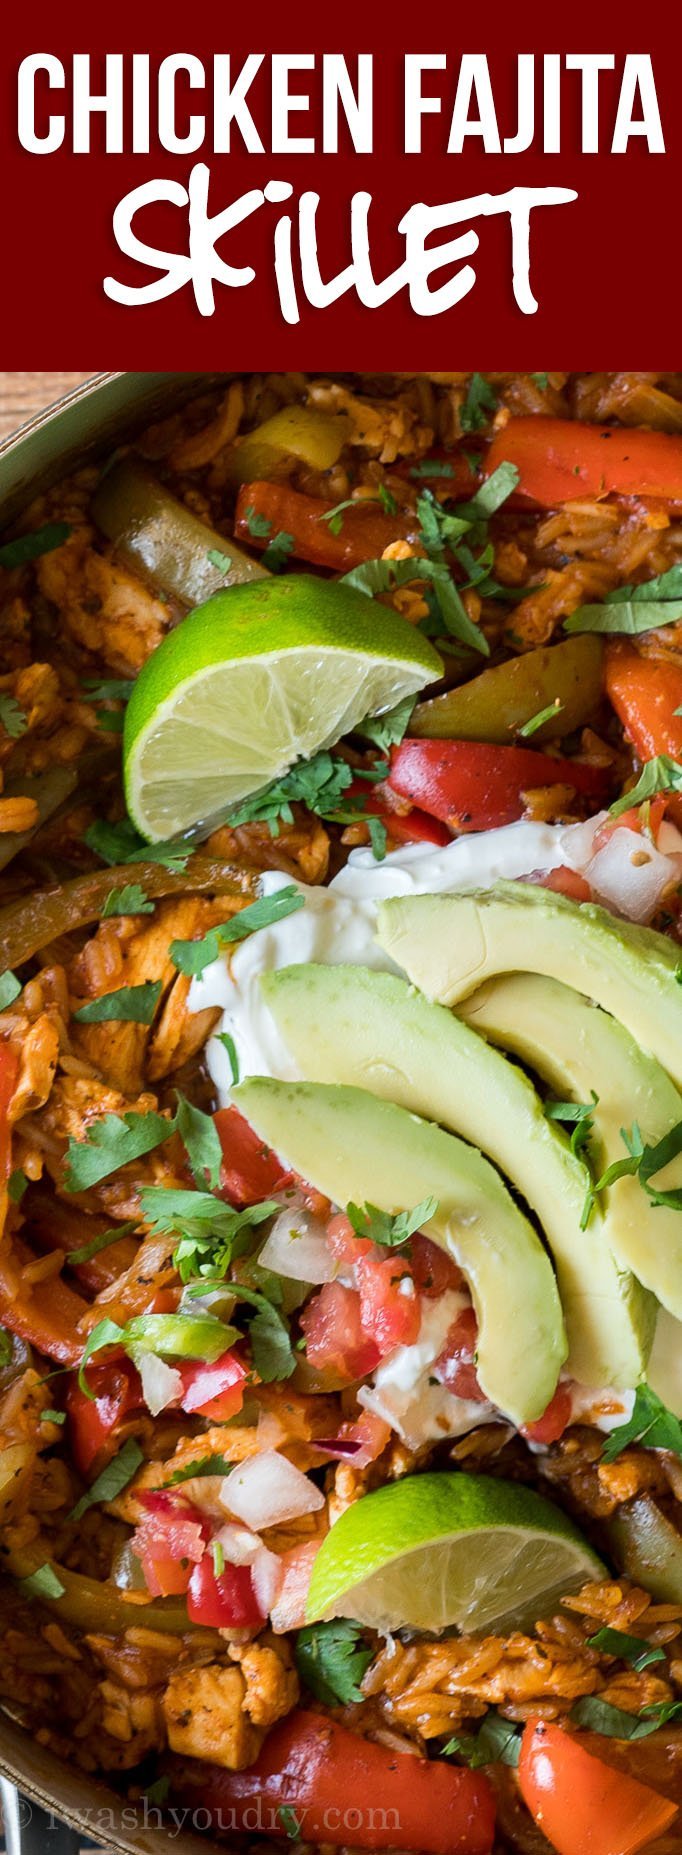 WOW! This fully loaded Chicken Fajita Rice Skillet is filled with all the classic flavors of chicken fajitas in one easy to make recipe! Everything is cooked in just one pan for an easy weeknight dinner!